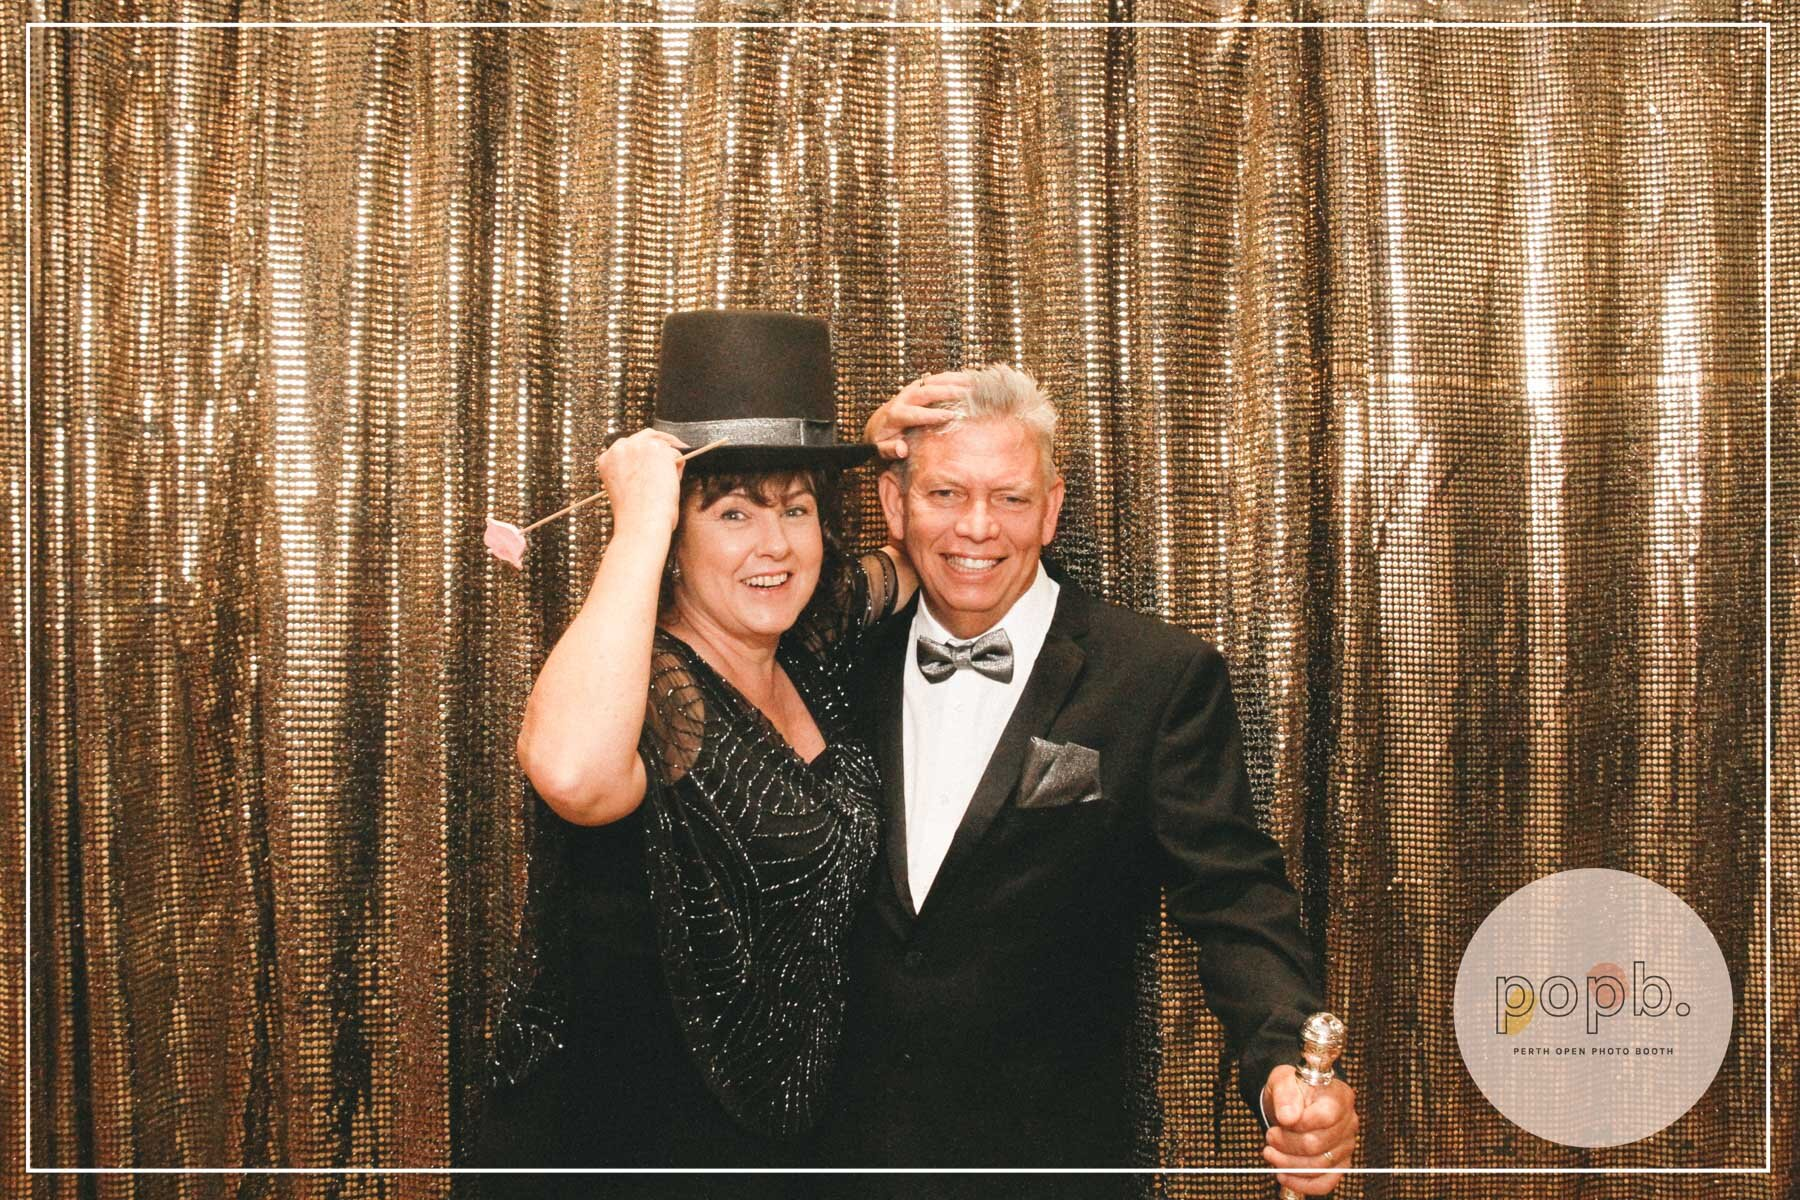 Ralph + debra's 60th - pASSWORD: PROVIDED ON THE night- ALL LOWERCASE -